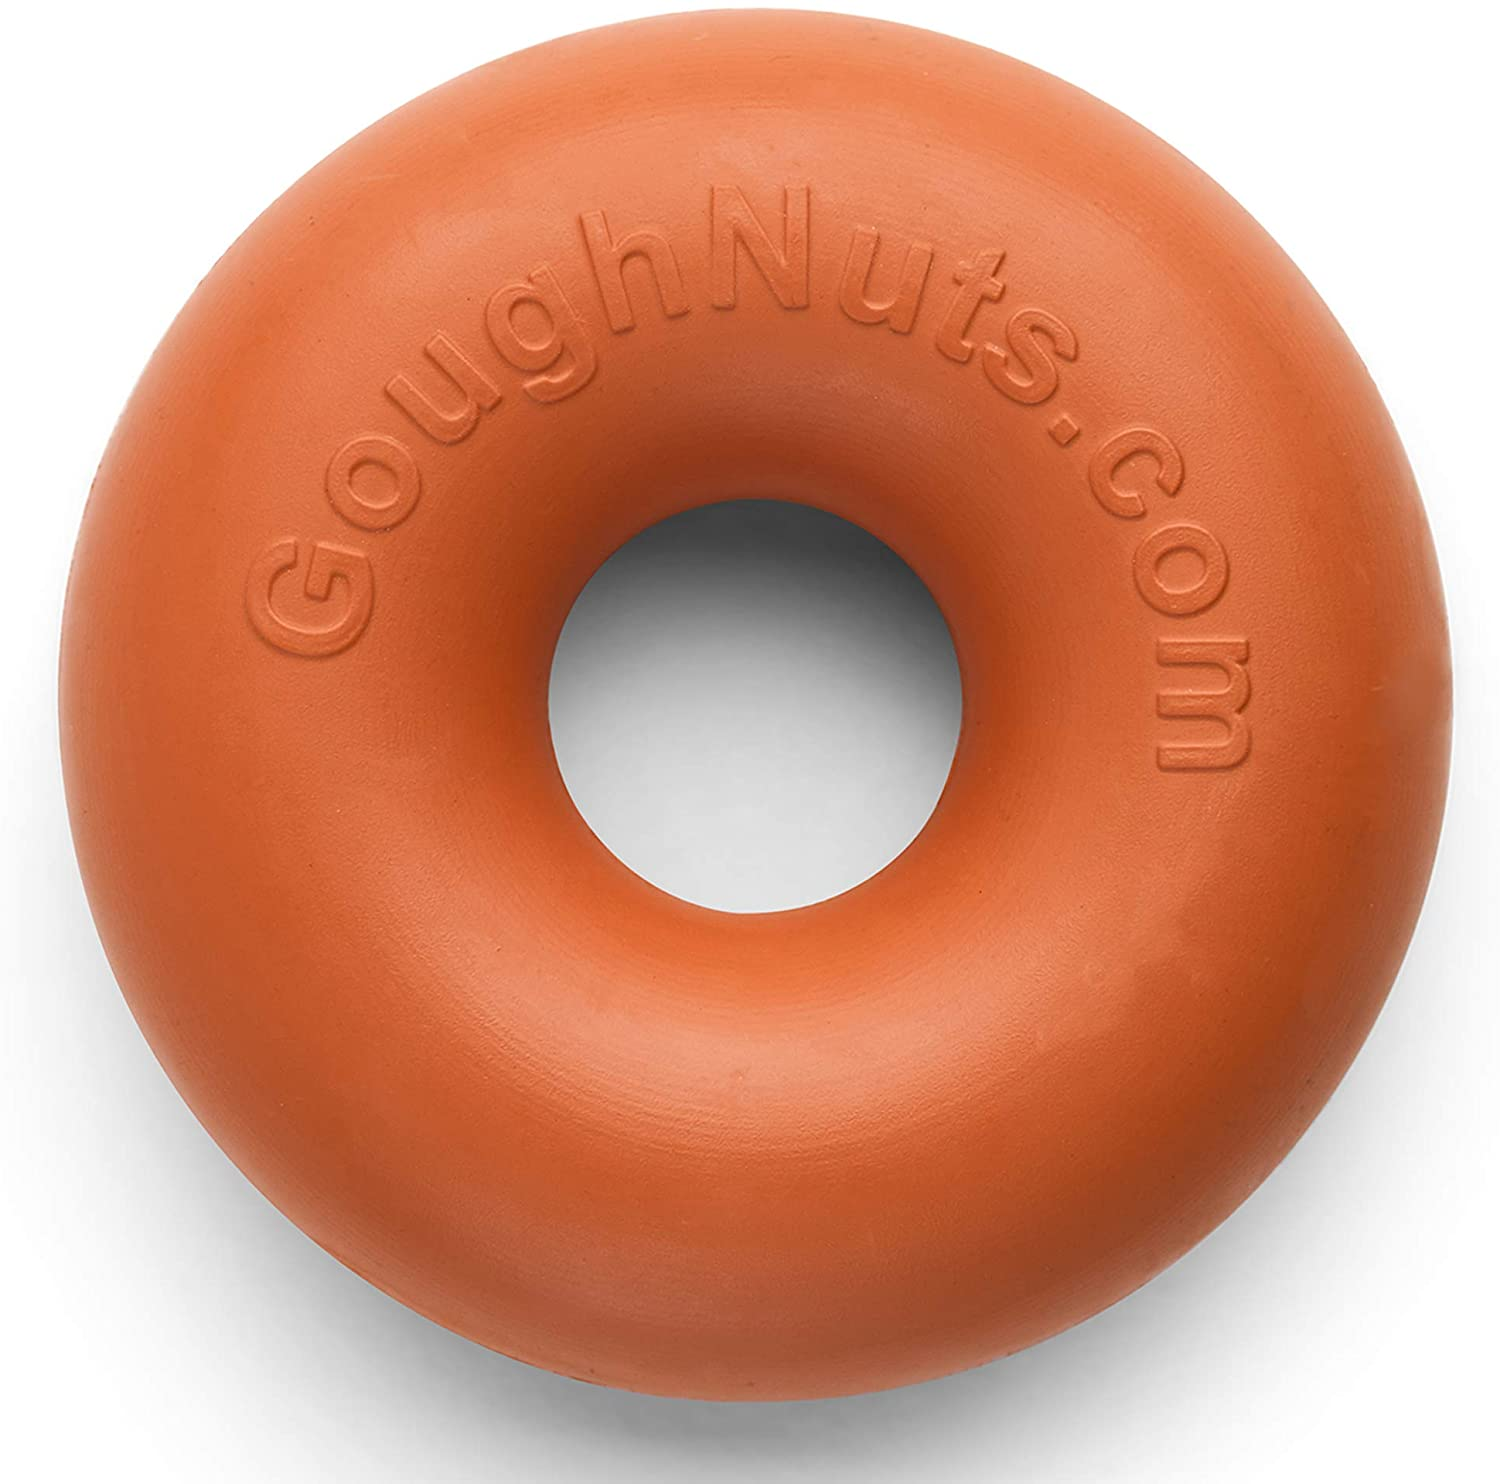 goughnuts, the best chew toy for puppies and dogs